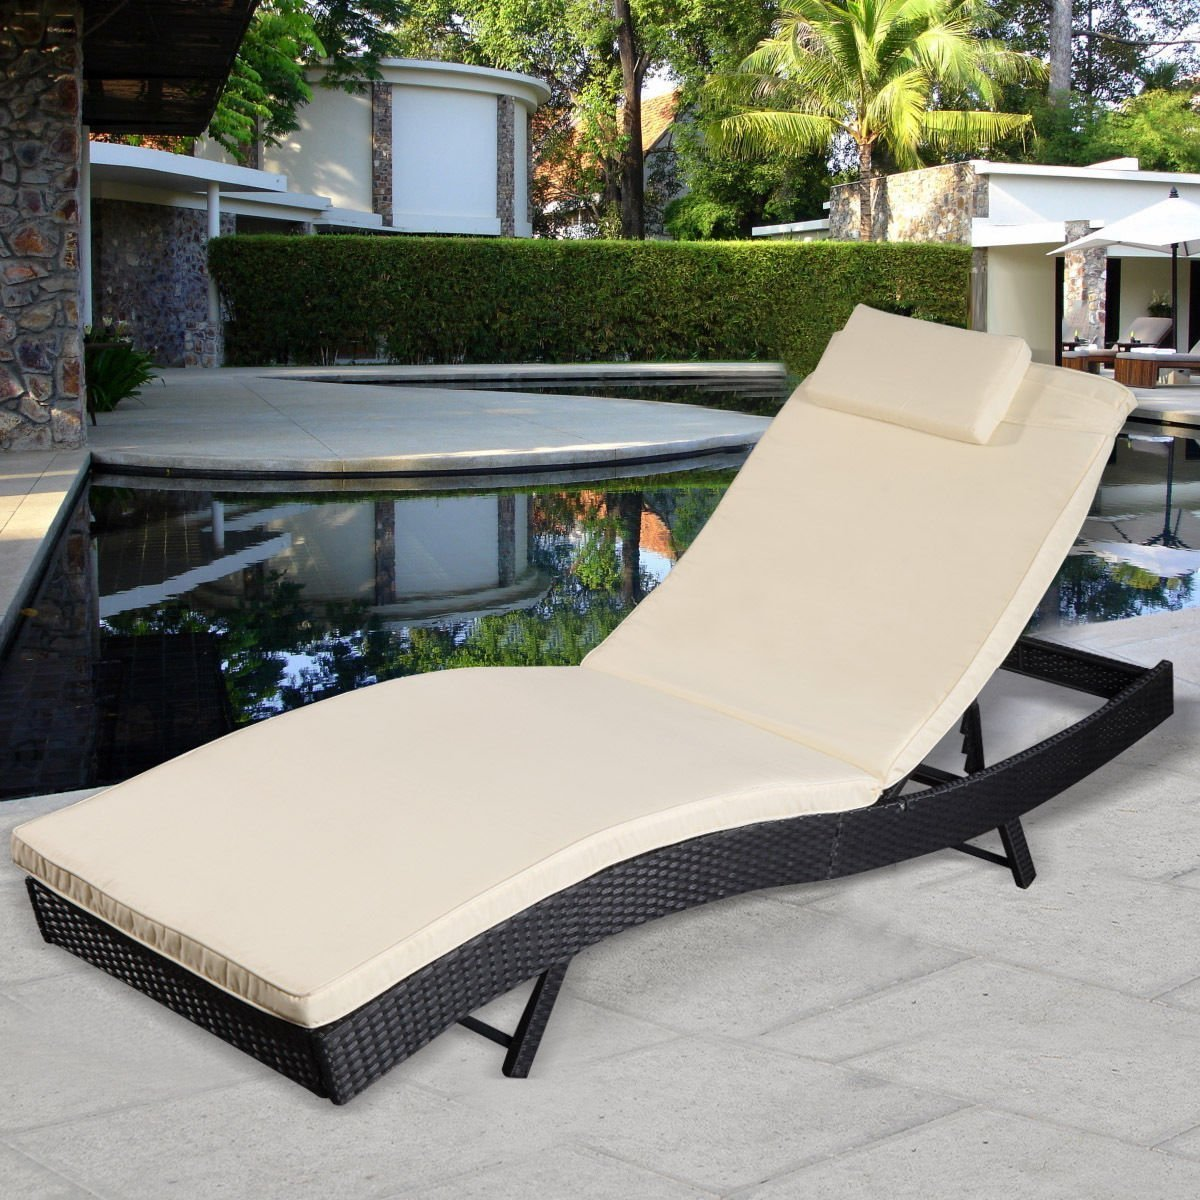 Outdoor outdoor chaise outdoor chaise lounge chairs design ideasthe best furnitures - Amazon Com Giantex Adjustable Pool Chaise Lounge Chair Outdoor Patio Furniture Pe Wicker W Cushion Patio Lawn Garden